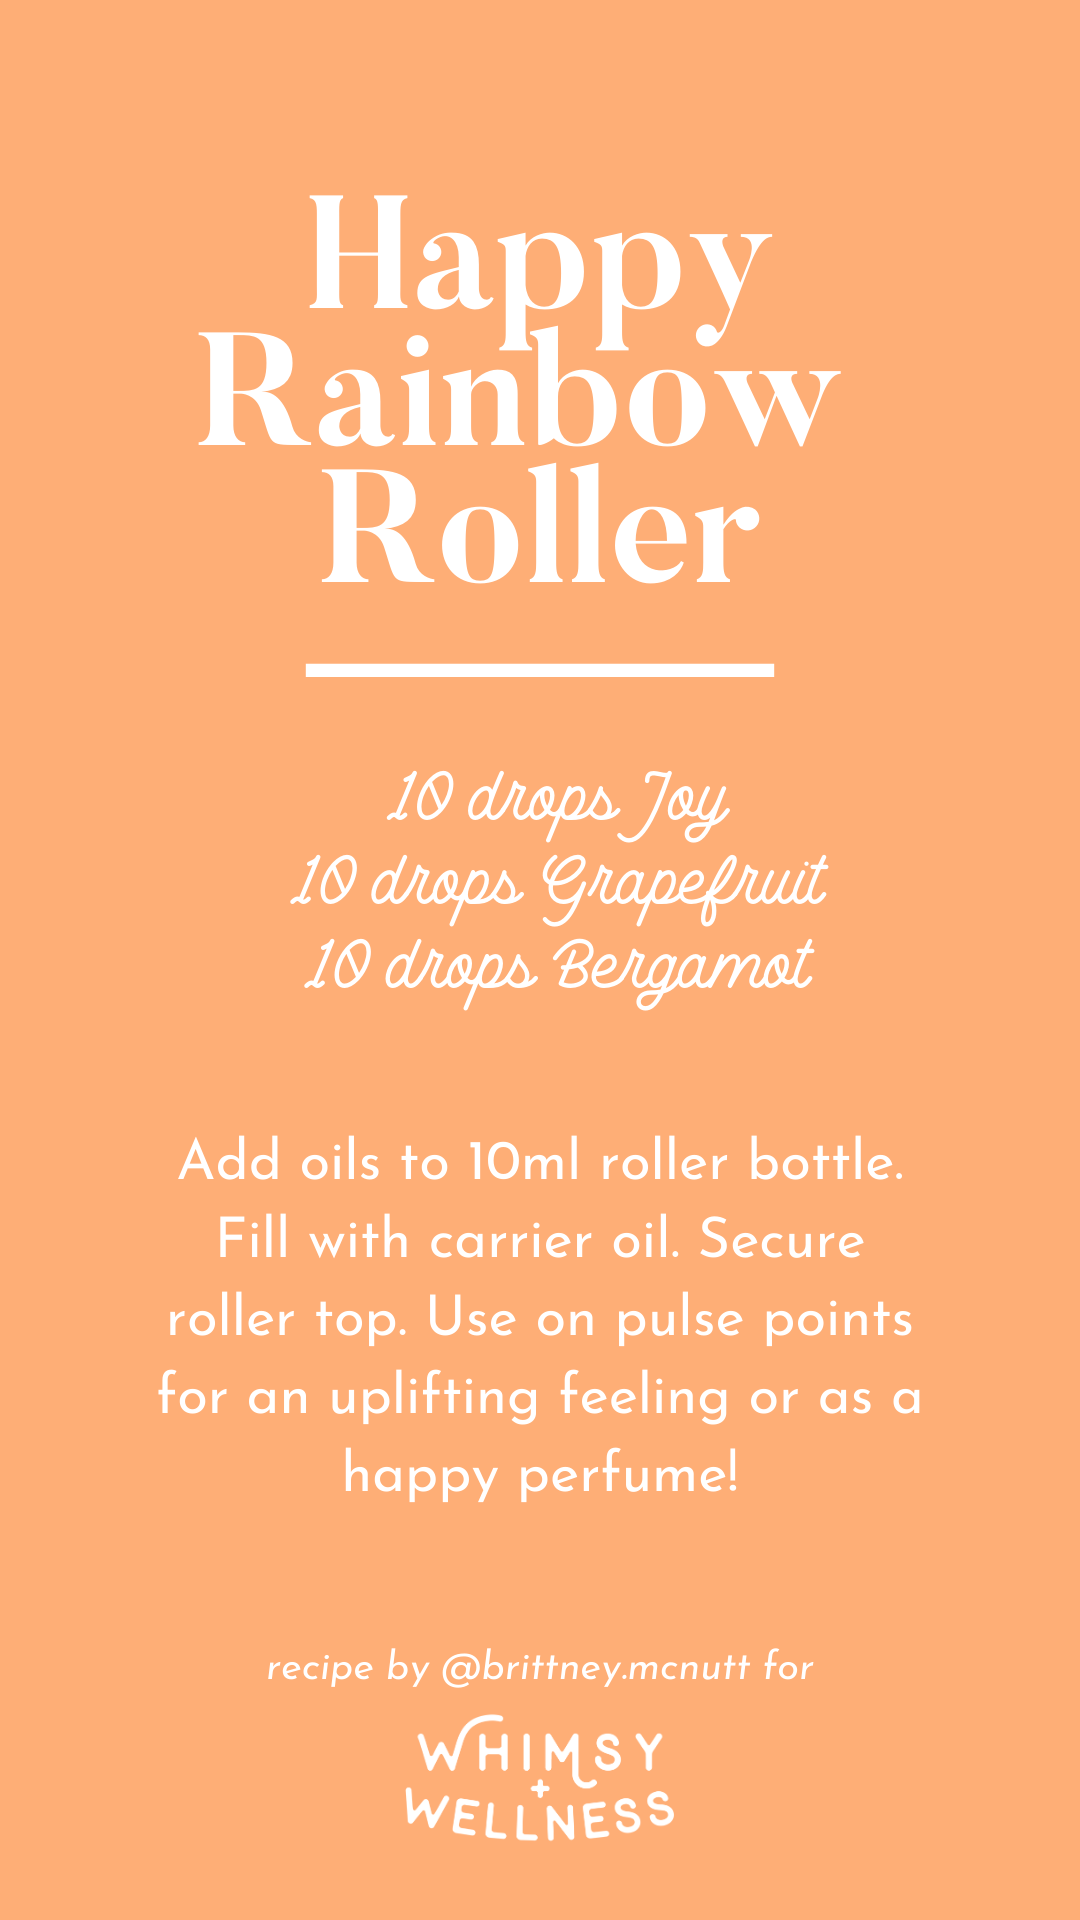 Happy rainbow roller recipe blend using Young Living essential oils